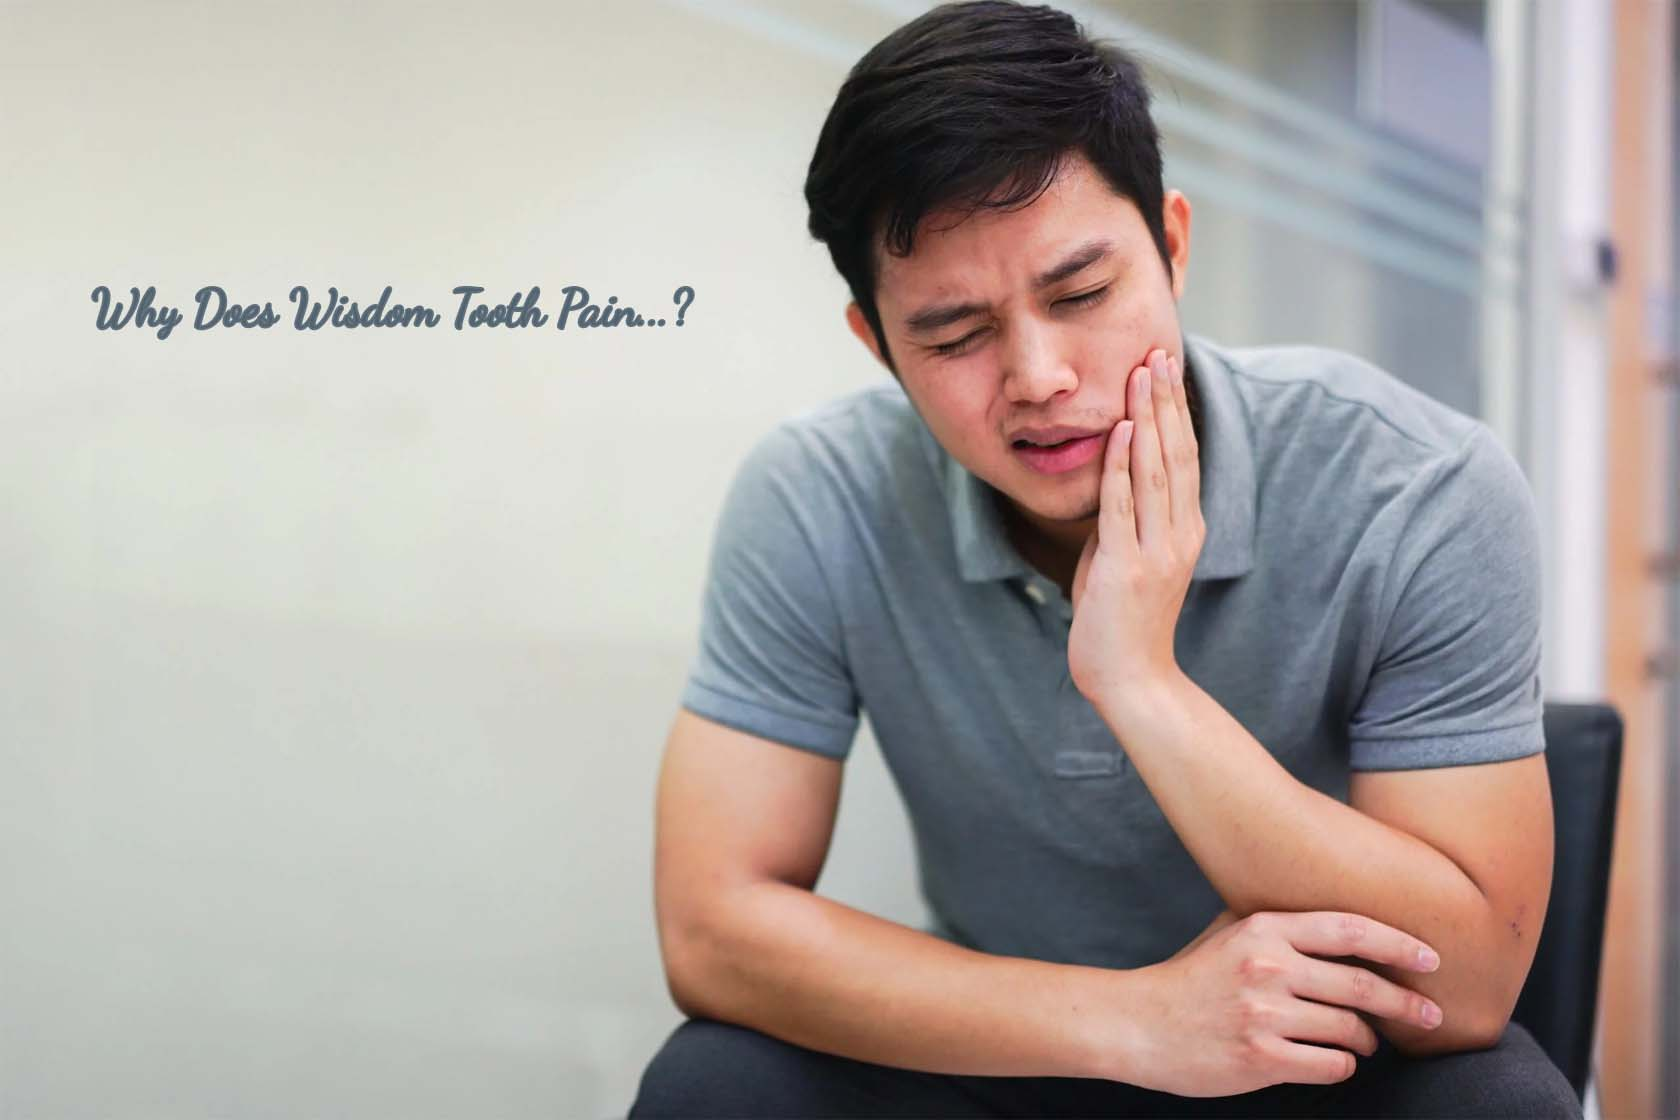 Why Does Wisdom Tooth Pain